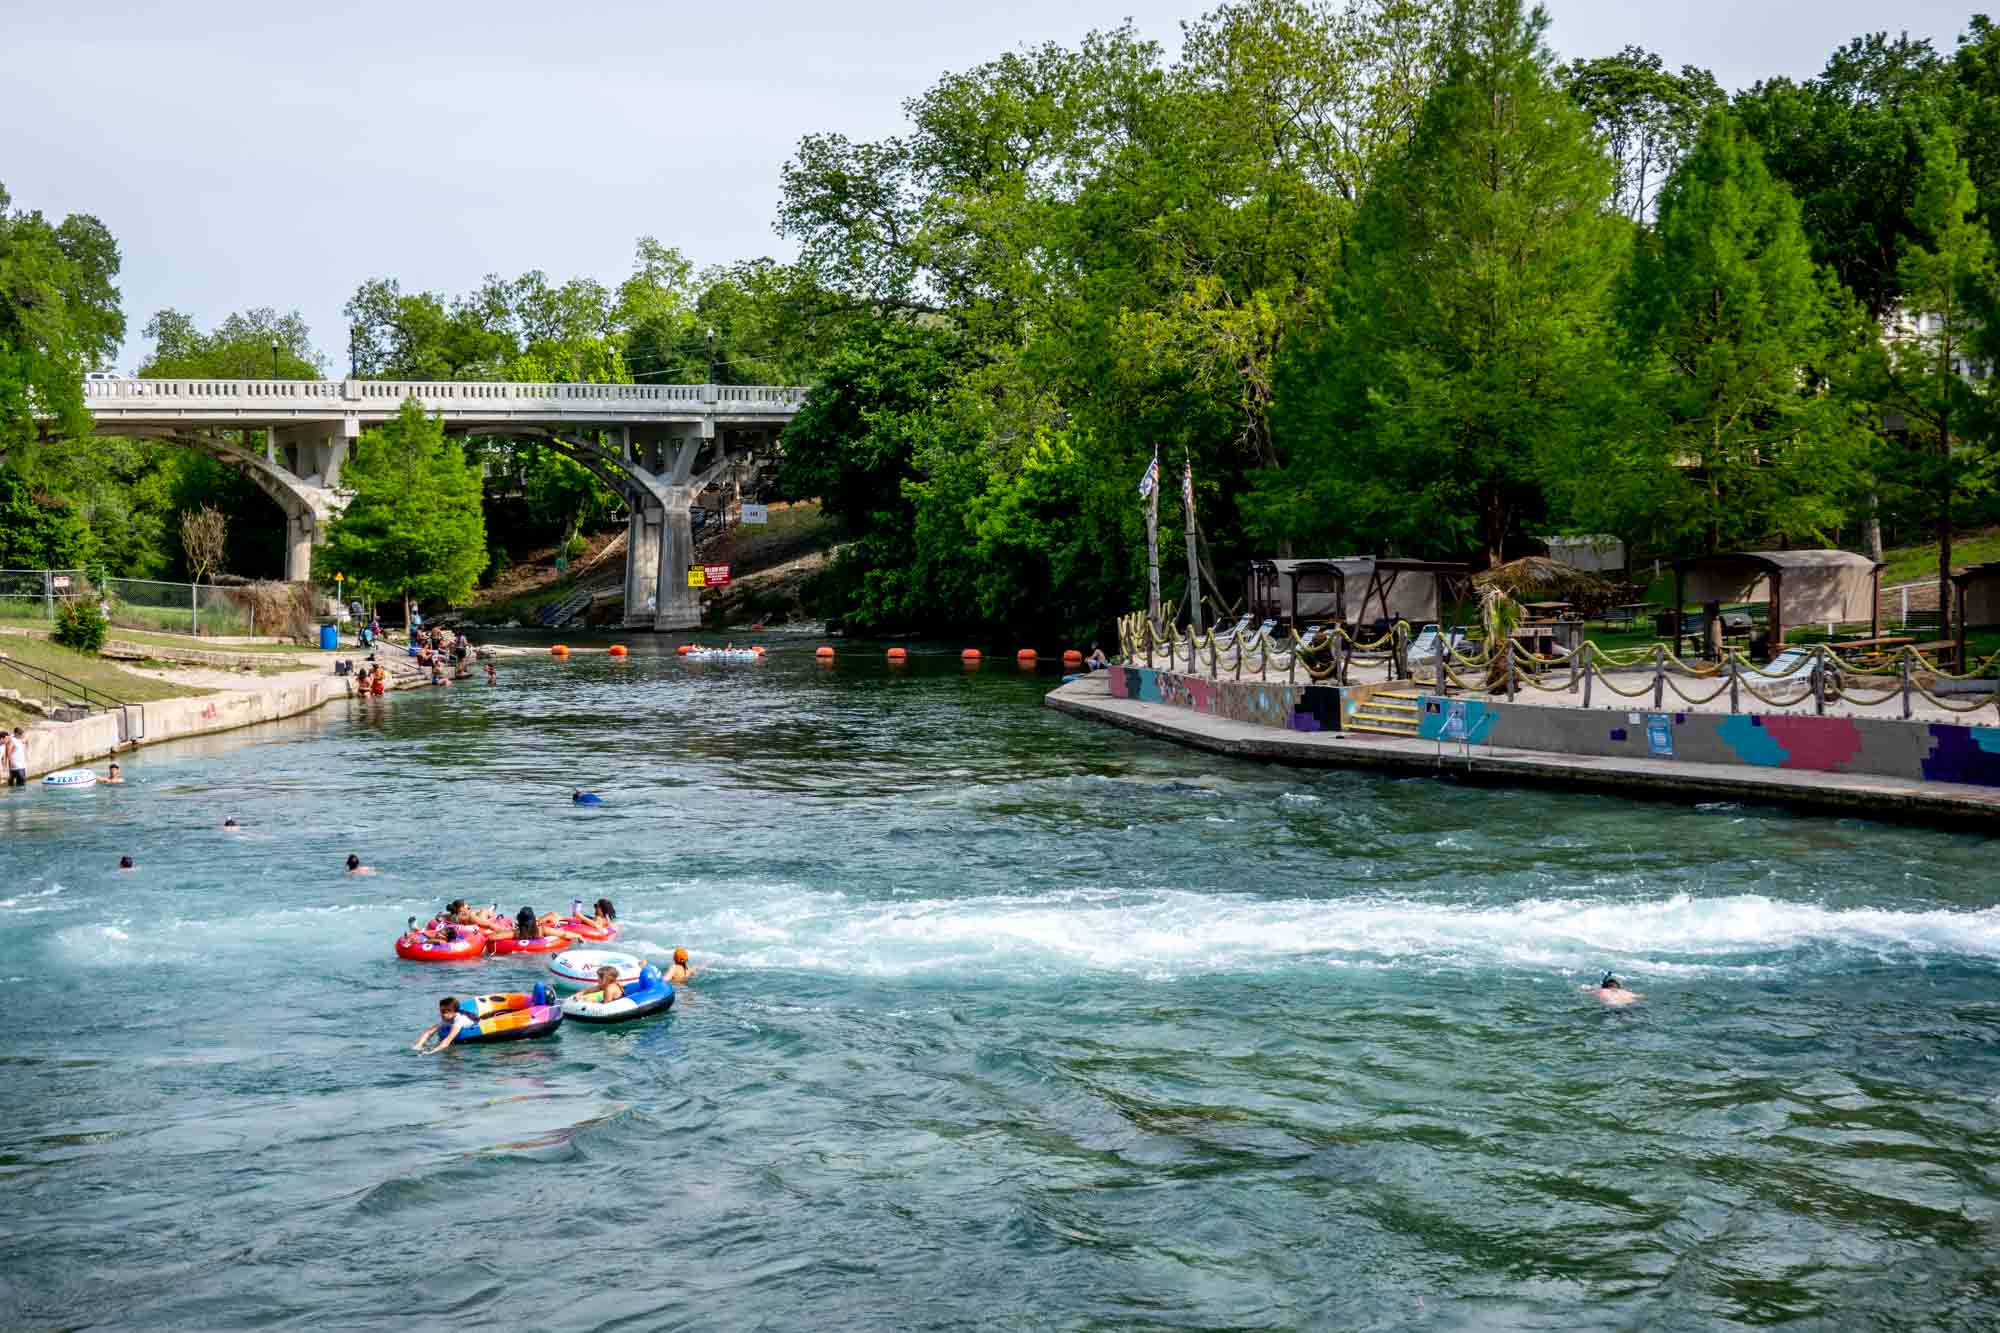 People in inner tubes in a river